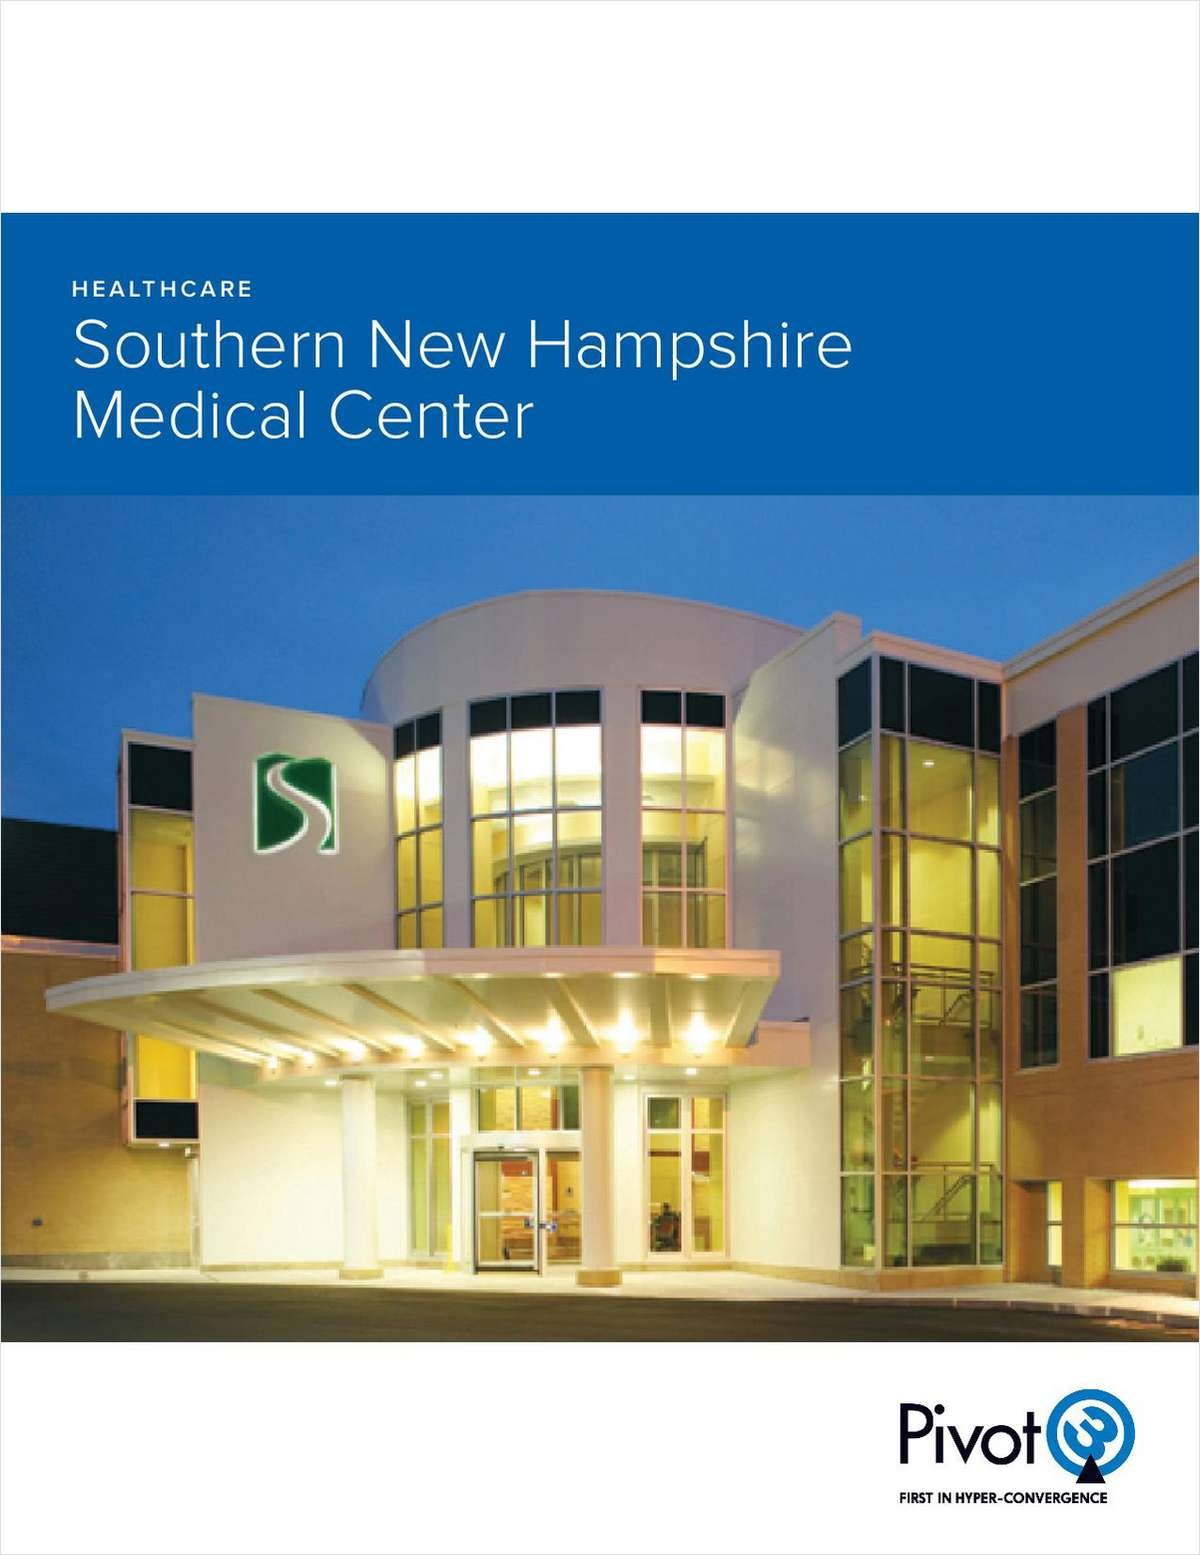 SNHMC Deploys VDI Platform to Provide High-Quality Healthcare